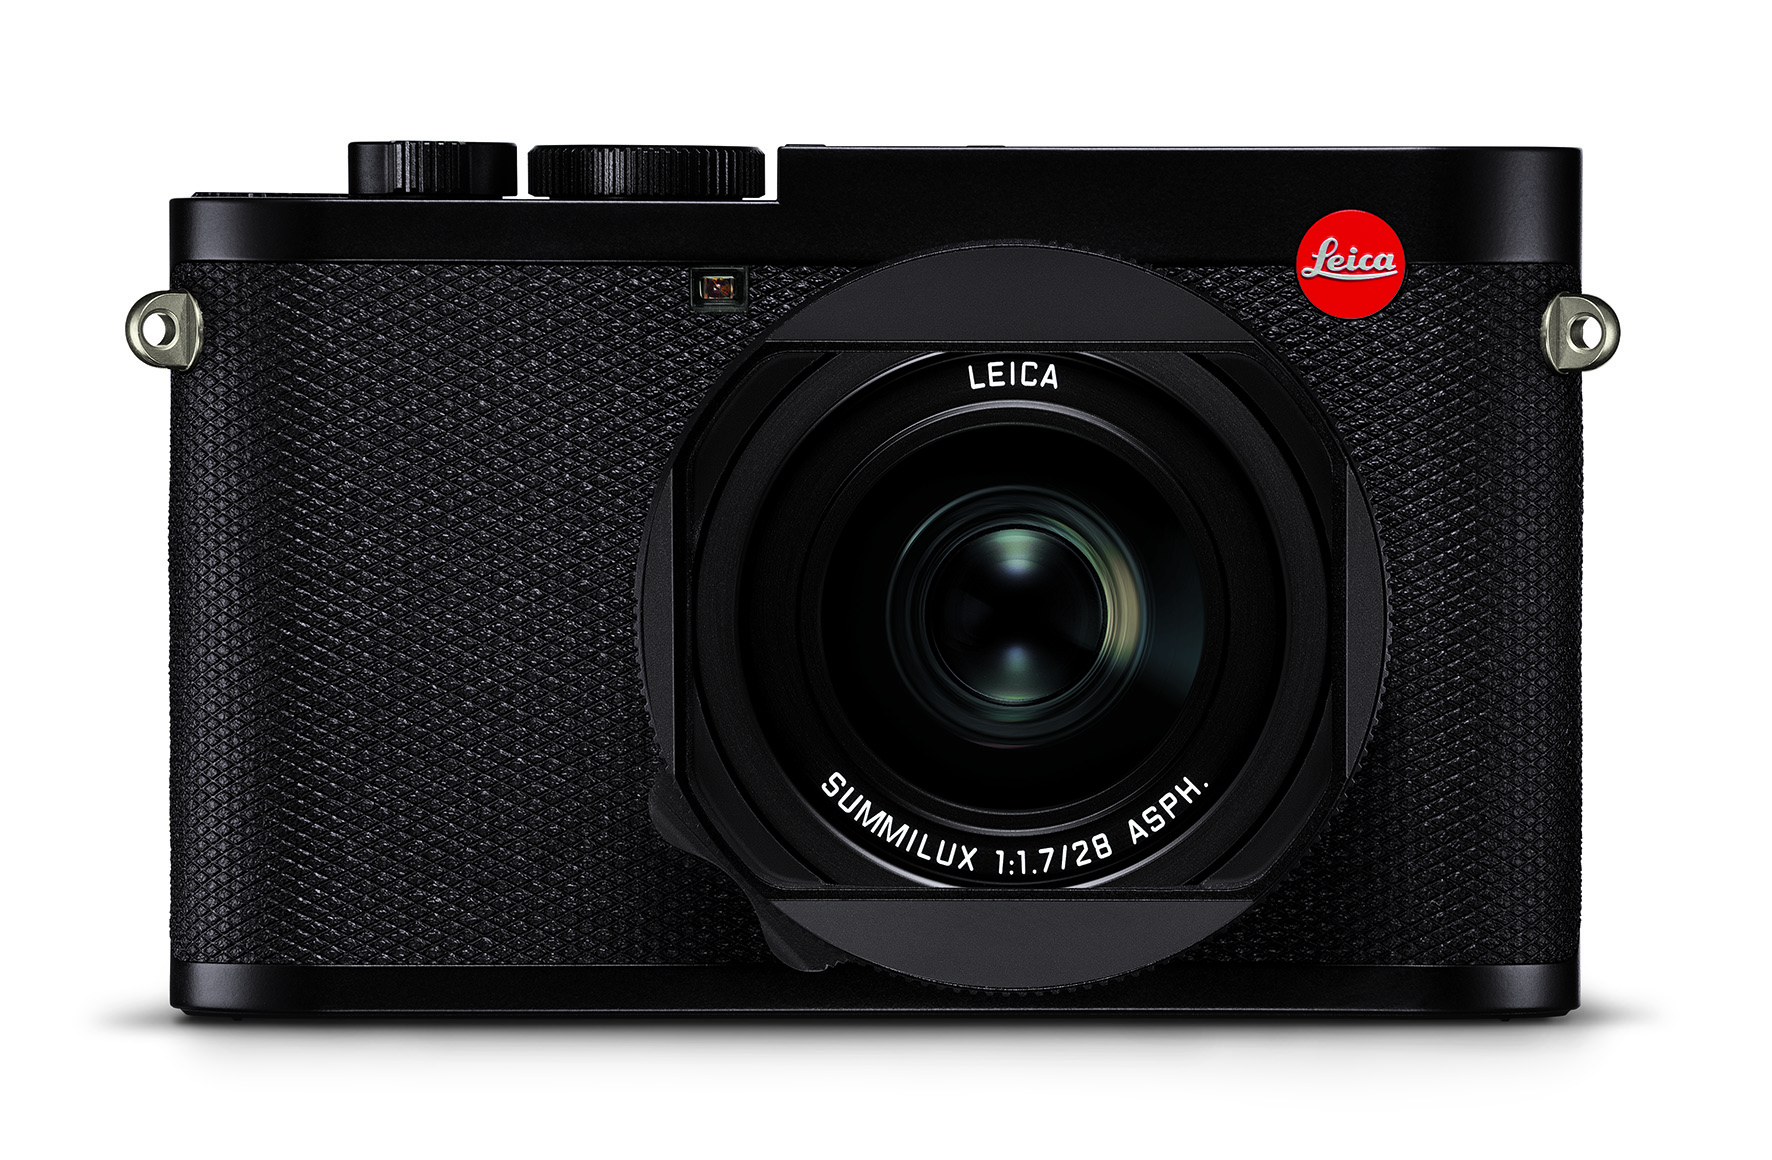 Leica Q2 is here, with 47 million pixels, 10fps shooting and 4K video